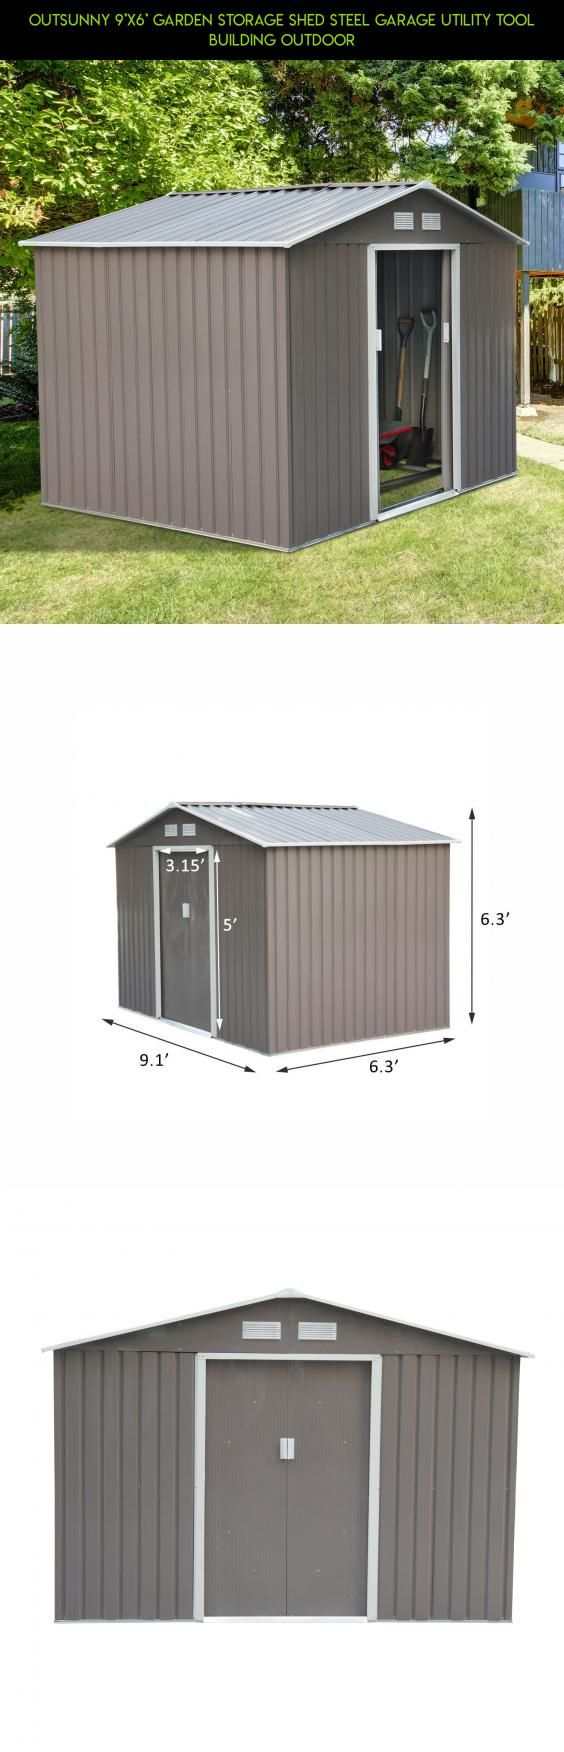 Outsunny 9'X6' Garden Storage Shed Steel Garage Utility Tool Building Outdoor #camera #a #racing #kit #fpv #tech #technology #shopping #products #parts #shed #storage #plans #drone #gadgets